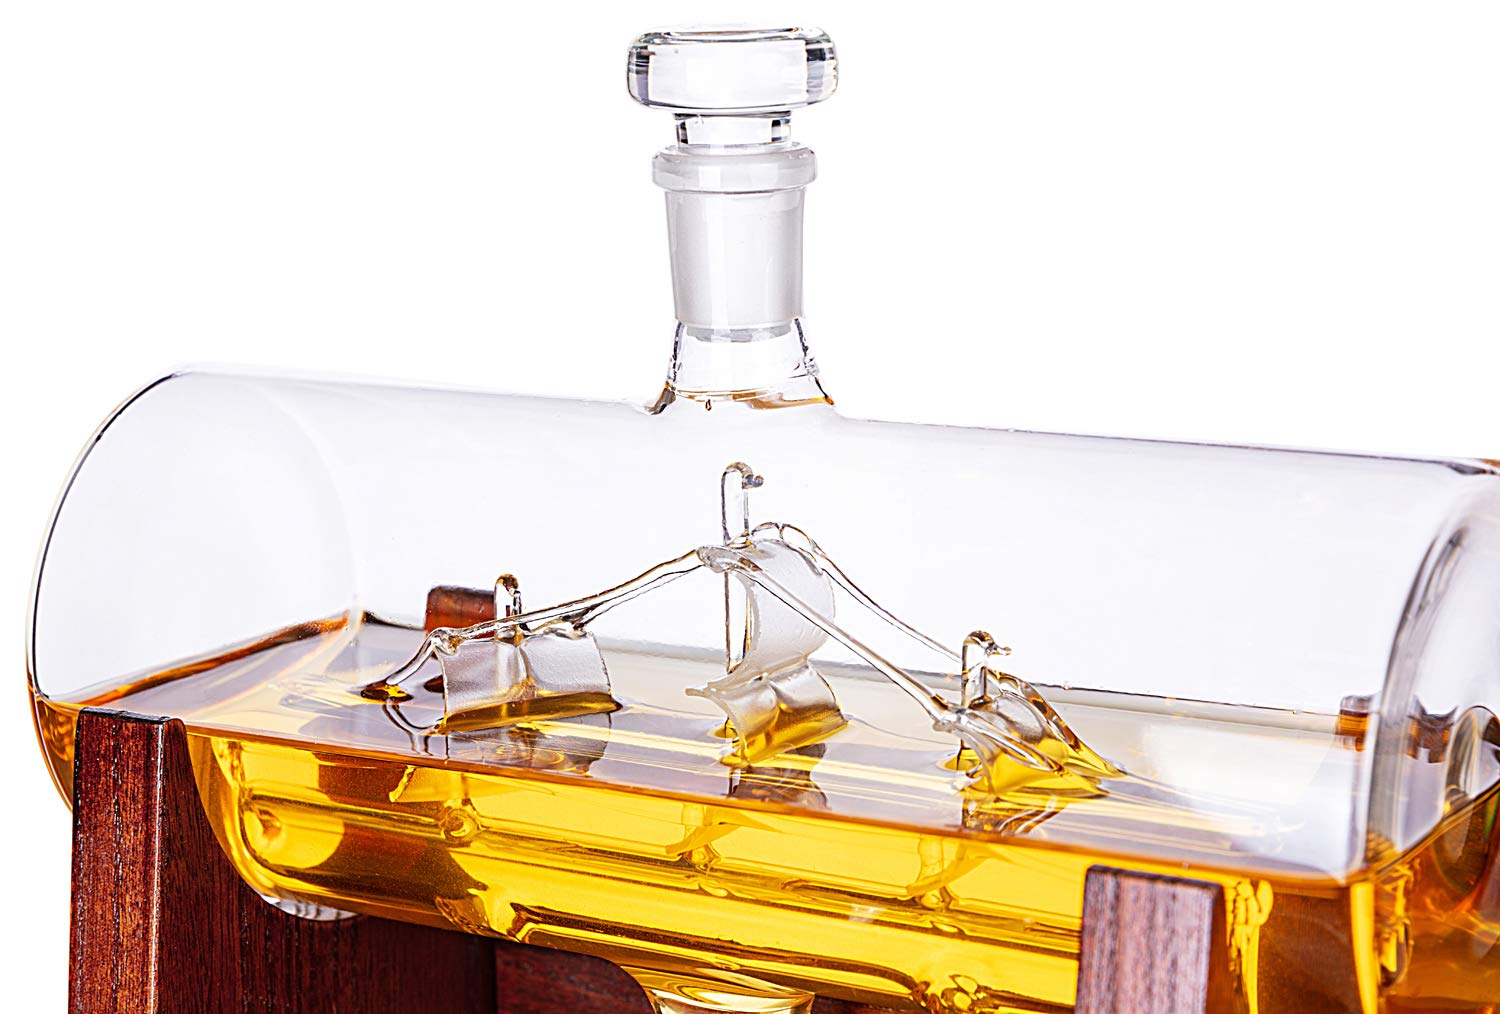 Jillmo Whiskey Decanter Set with 2 Glasses - 1250ml & 42 oz Lead Free Barrel Ship Dispenser with Detachable Wooden Holder Gift for Liquor, Scotch, Bourbon, Vodka, Whisky, Rum & Alcohol by Jillmo (Image #3)